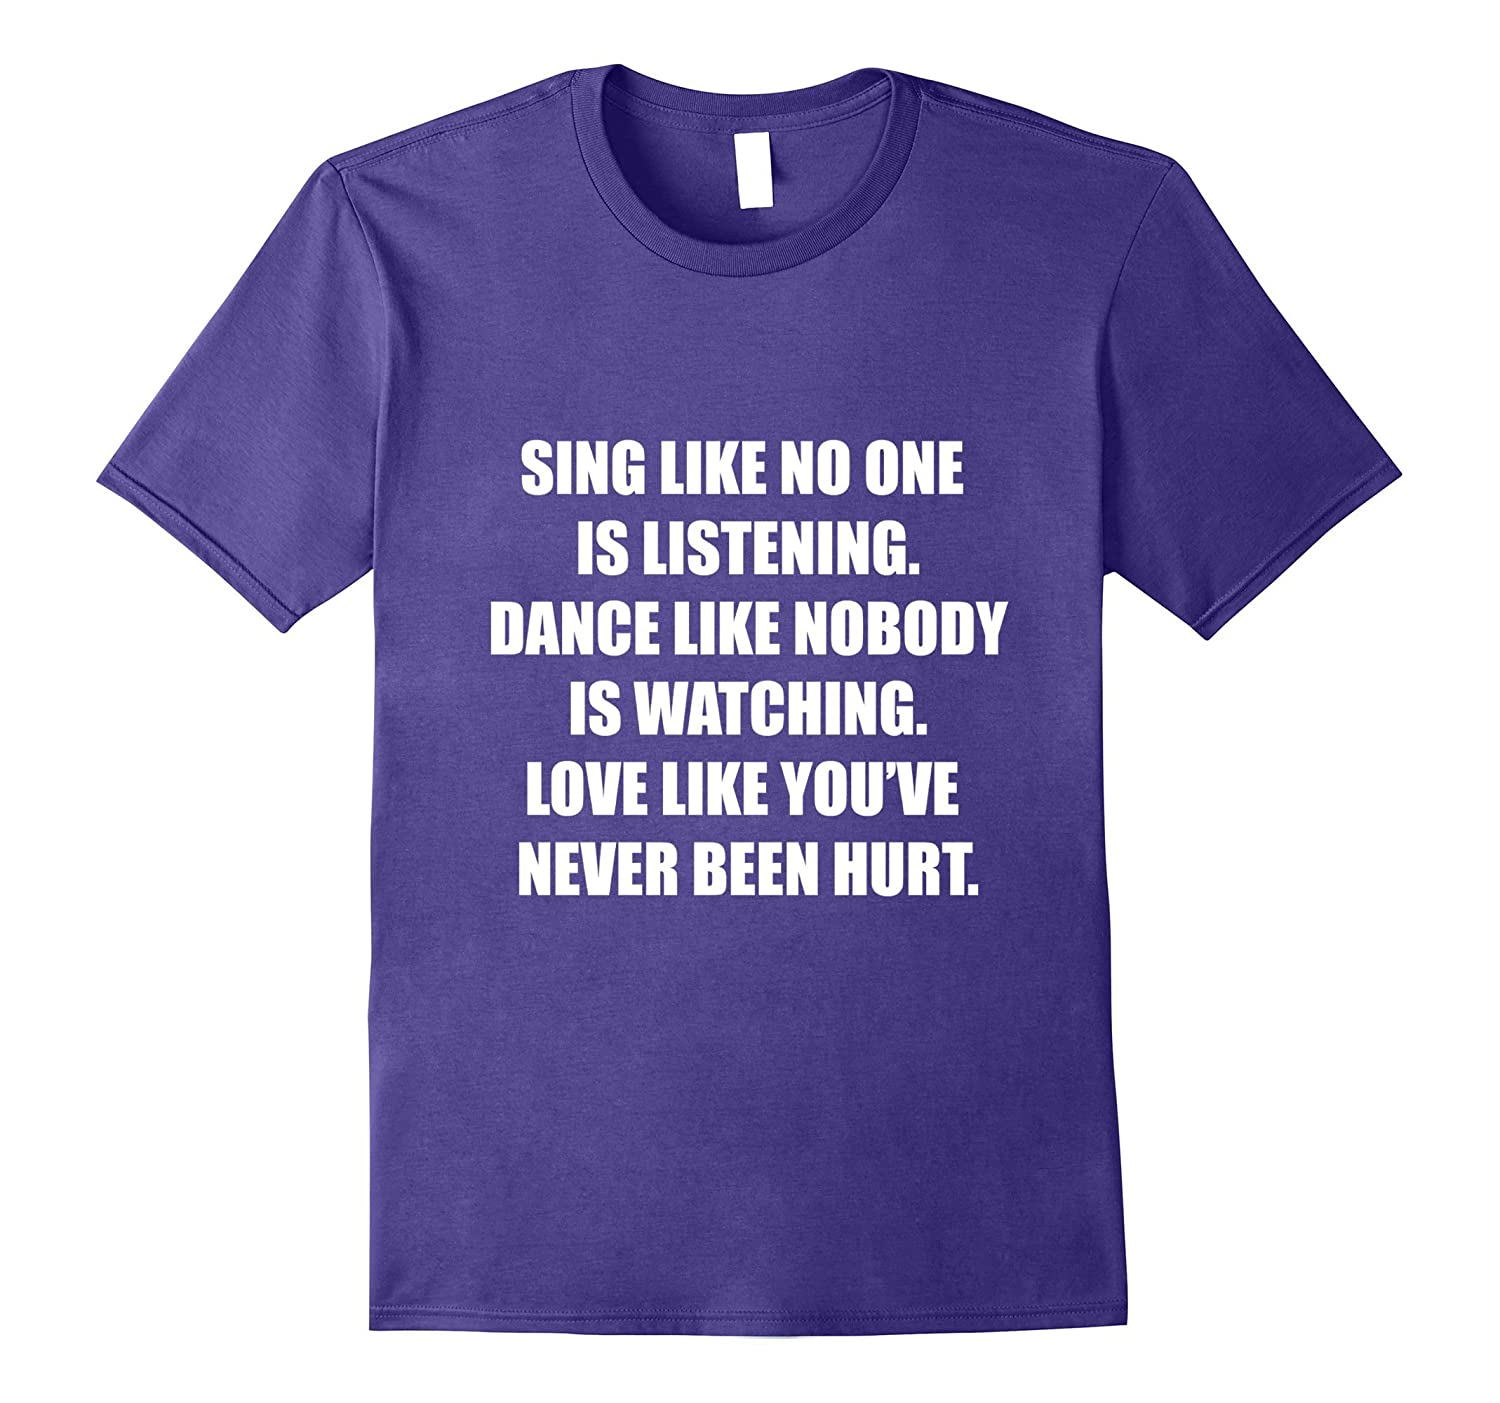 Sing & Dance T-Shirt, Dance Like Nobody Is Watching You-FL